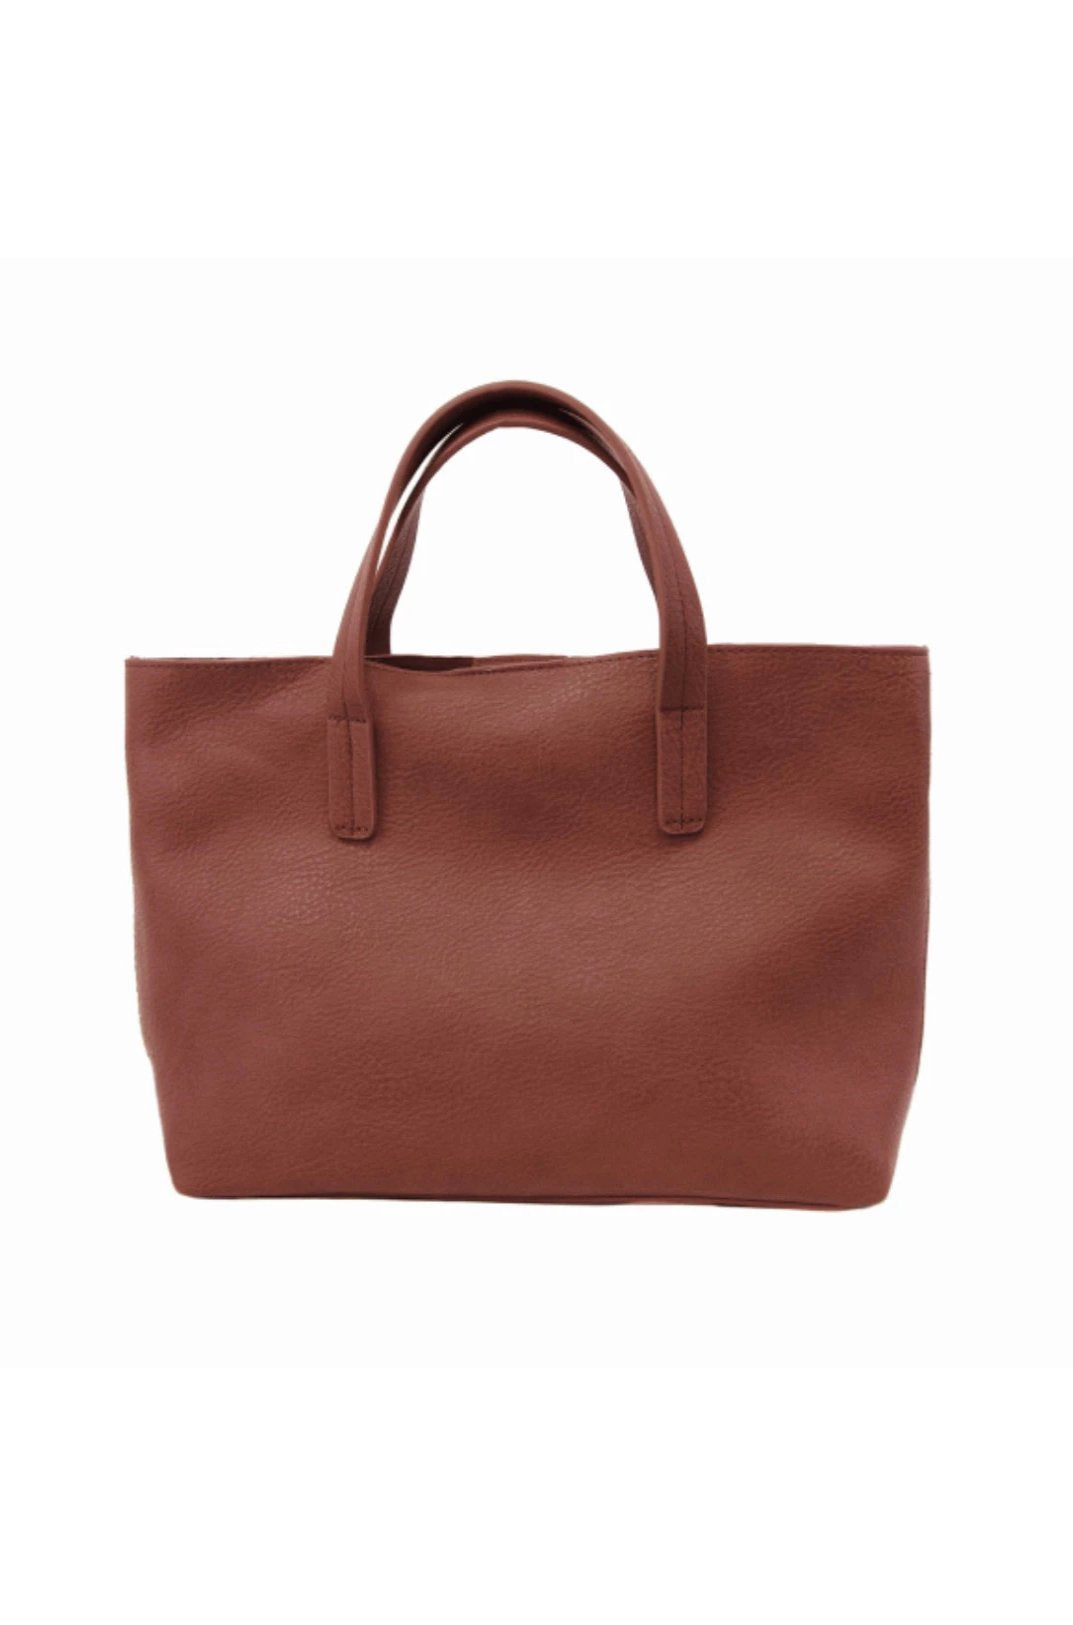 Kelsey Mini Tote Handbag in Multiple Colors by Joy Susan